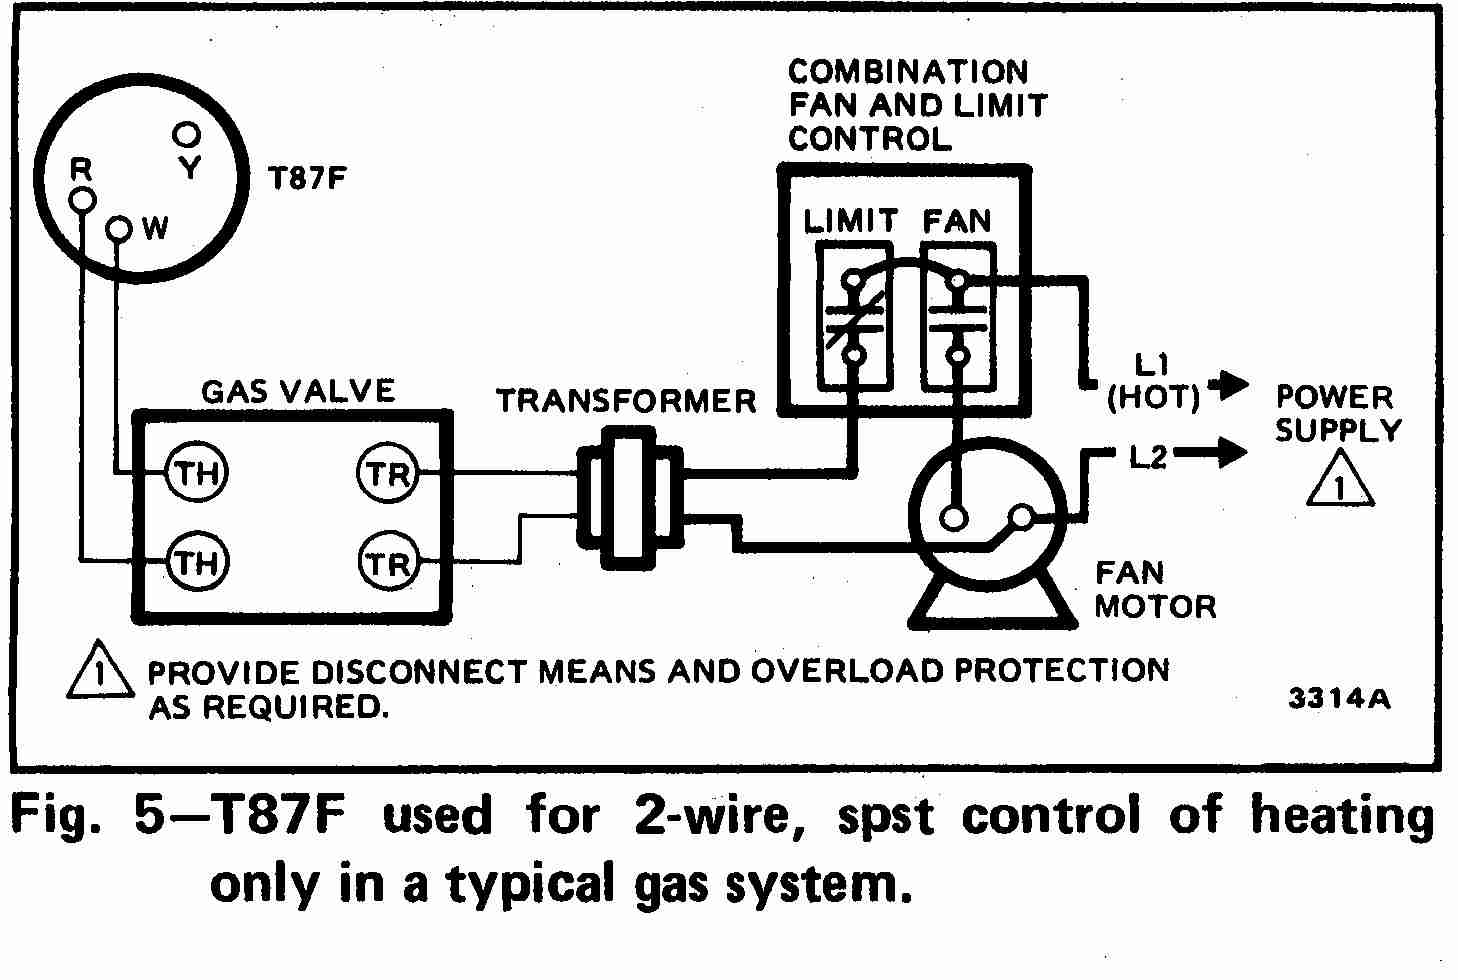 Guide To Wiring Connections For Room Thermostats 100 Amp Electric Furnace Diagram Honeywell T87f Thermostat 2 Wire Spst Control Of Heating Only In